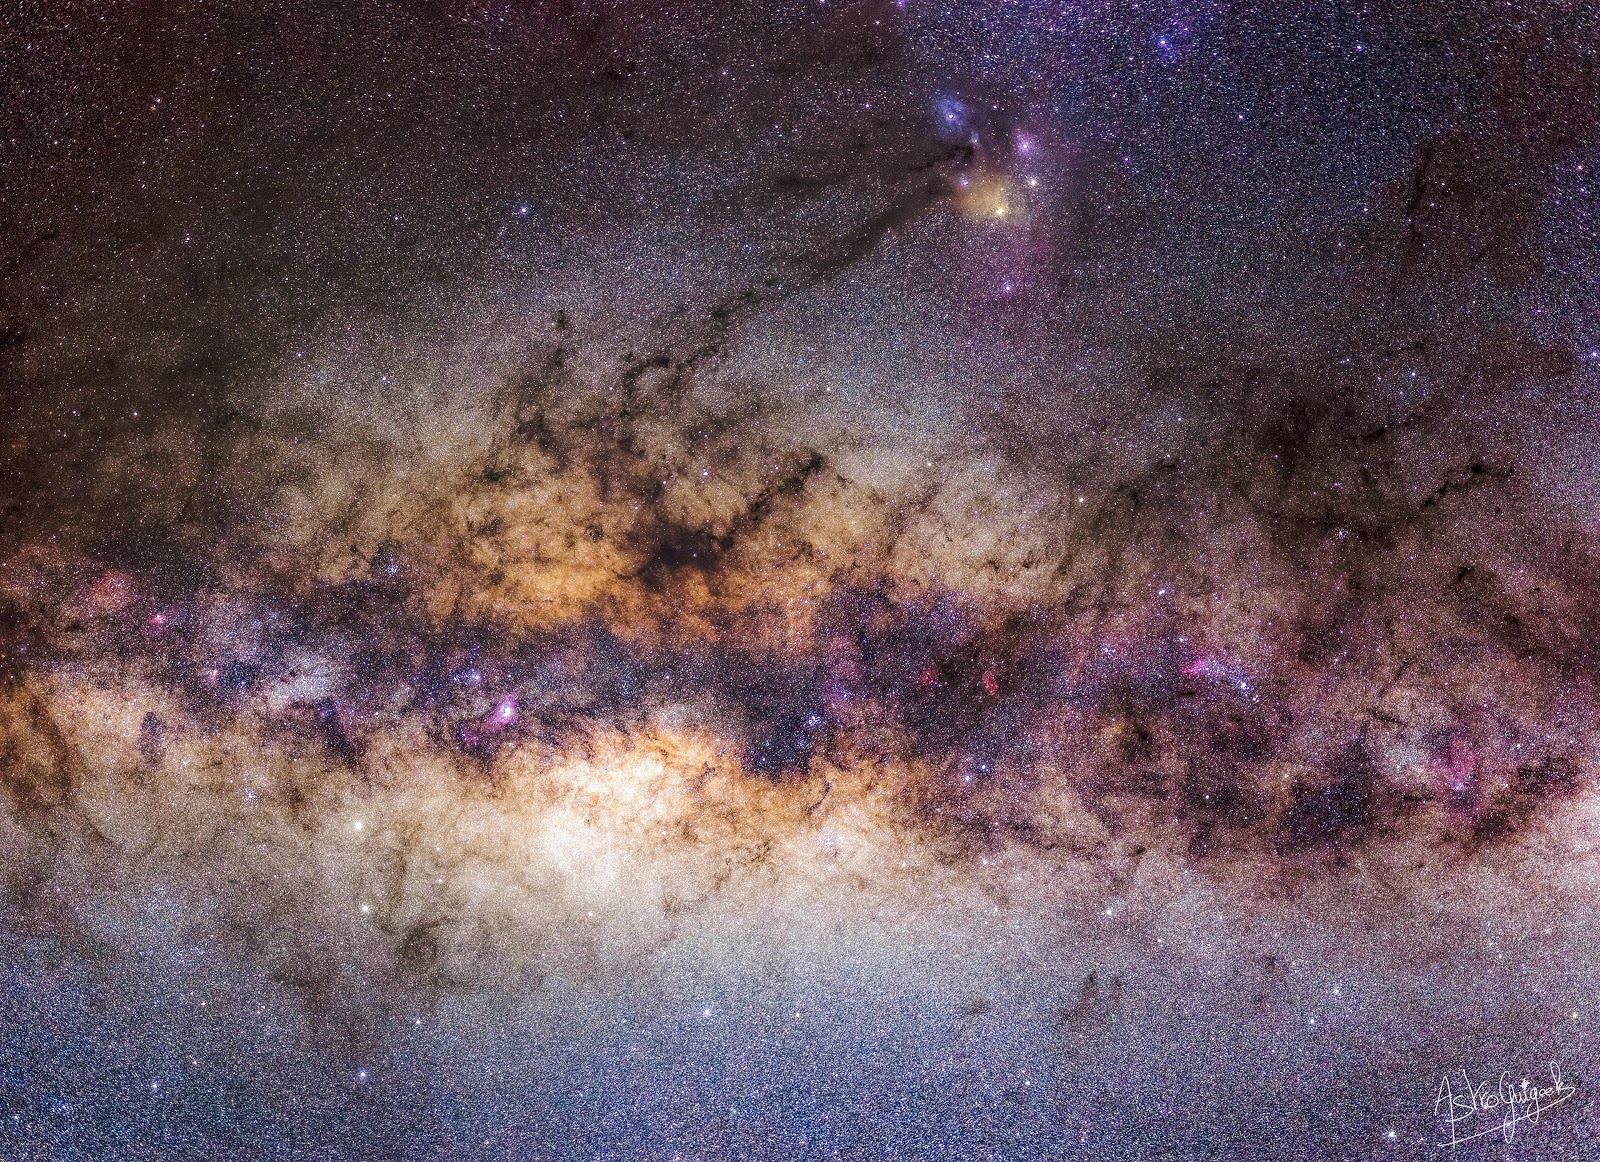 Diving into the Galactic Center